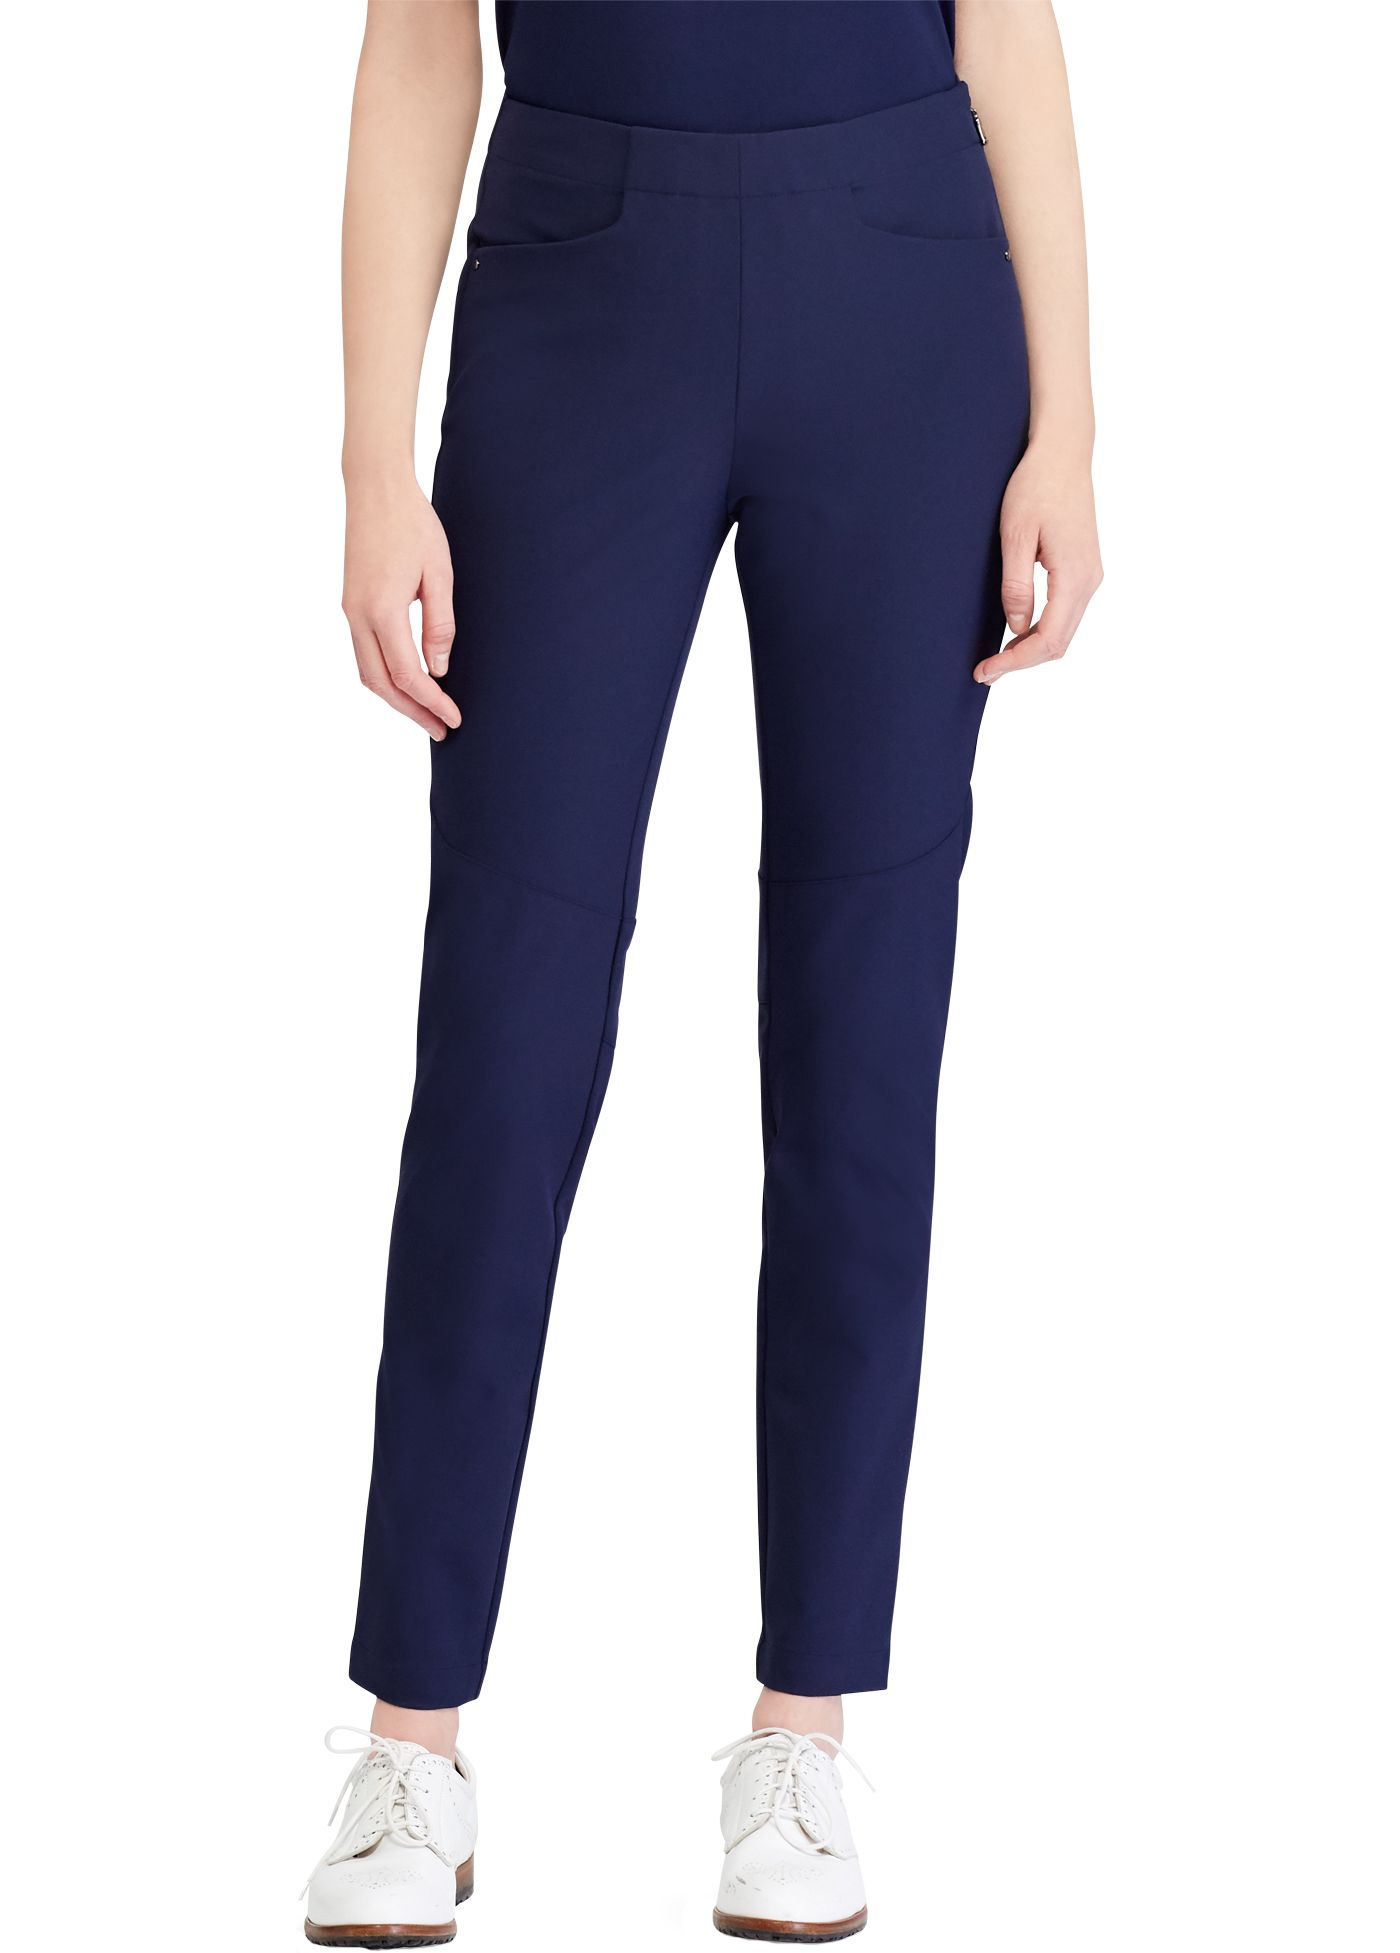 RLX Golf Women's Stretch Twill Skinny Golf Pants